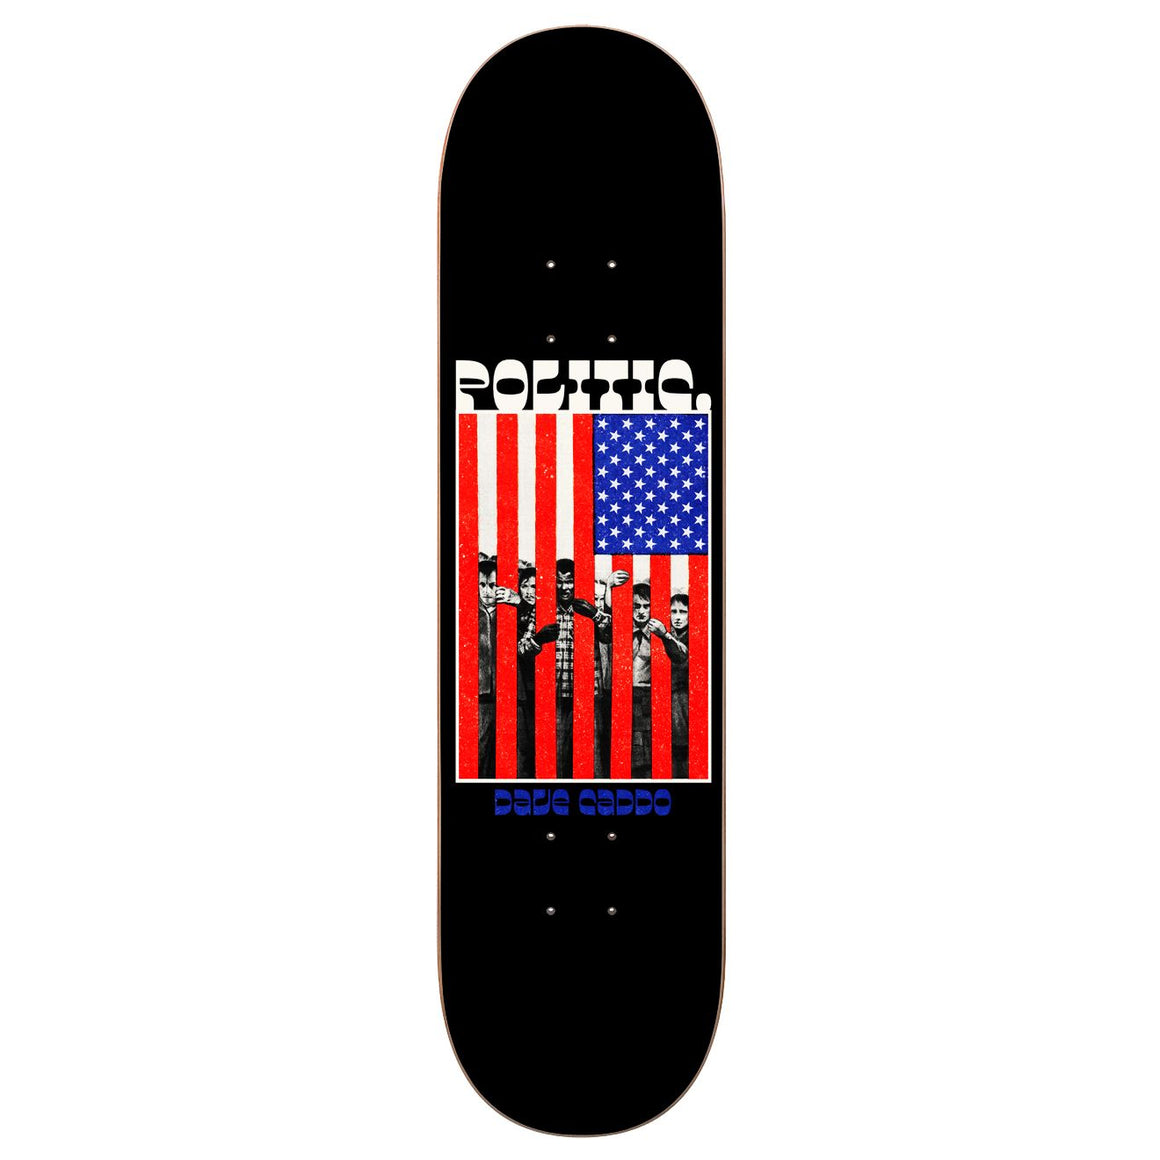 Politic Caddo Behind Bars Deck (8.5)